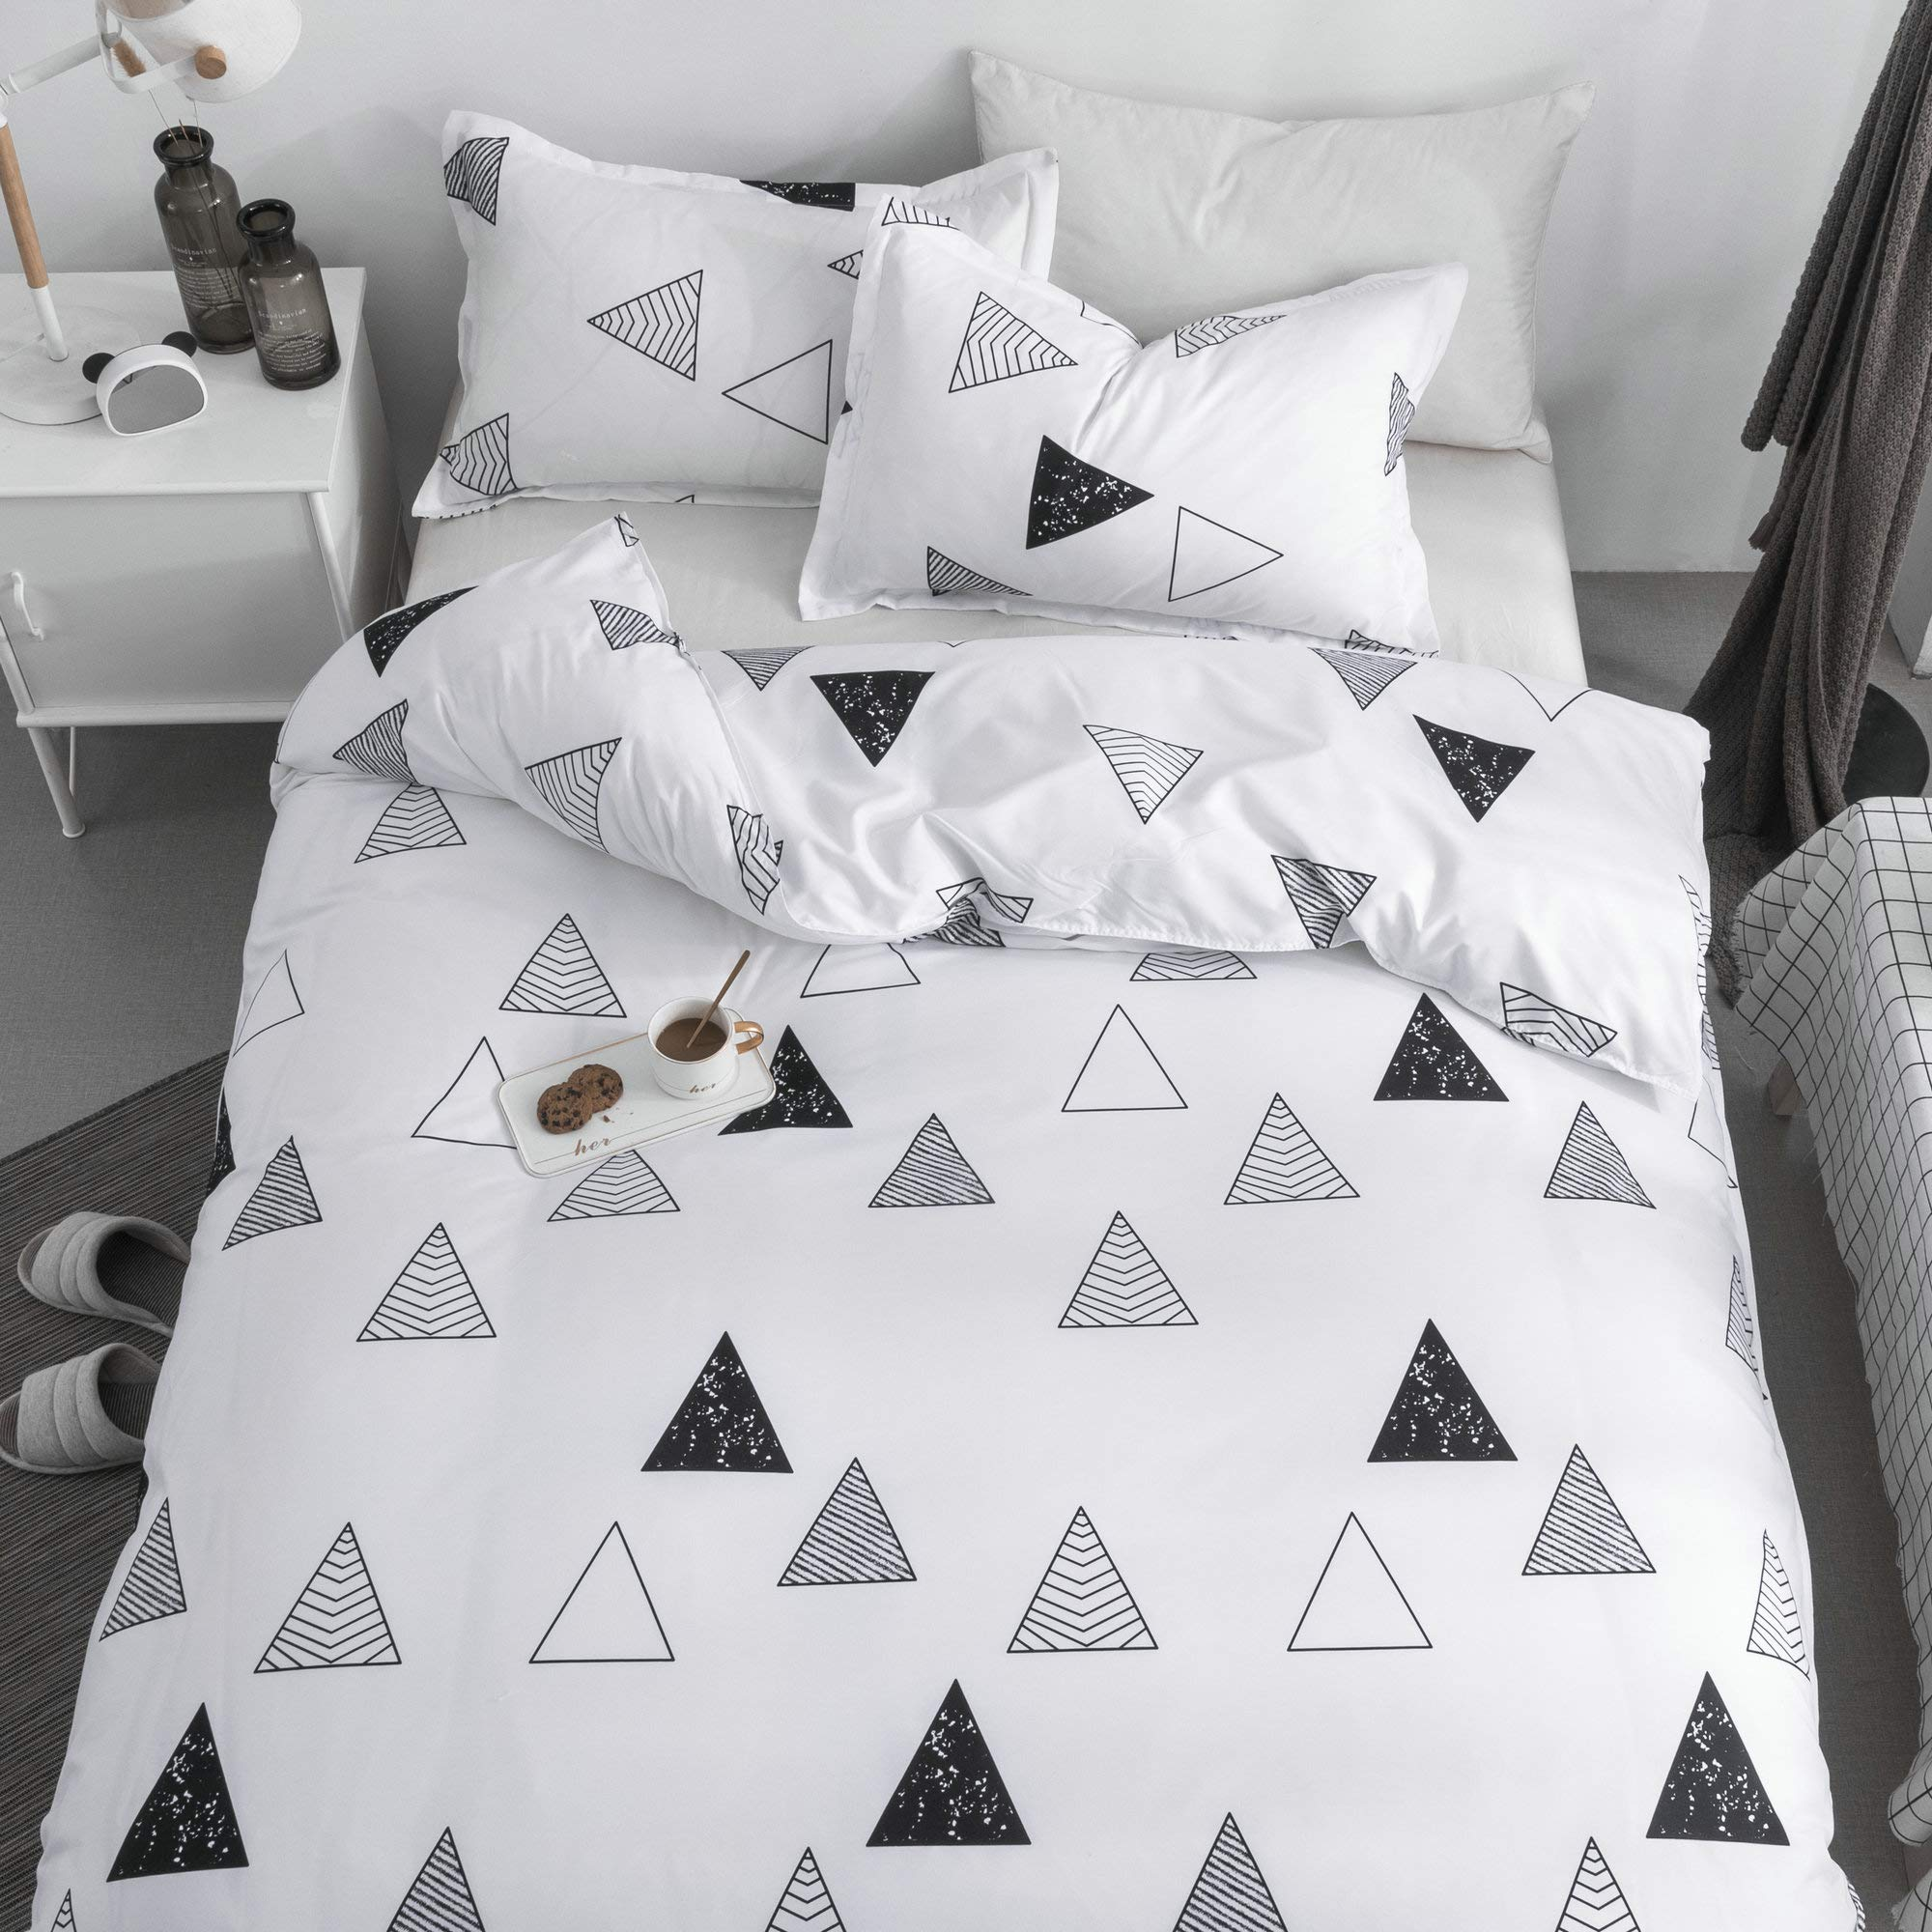 KFZ Triangle Geometry White Duvet Cover Set, 3PCS Twin Bed Set Size with One Comforter Cover (Without Duvet Insert),2 Pillowcases in Standard Size, Modern Themed, Breathable Bed Set for Kids Teenagers